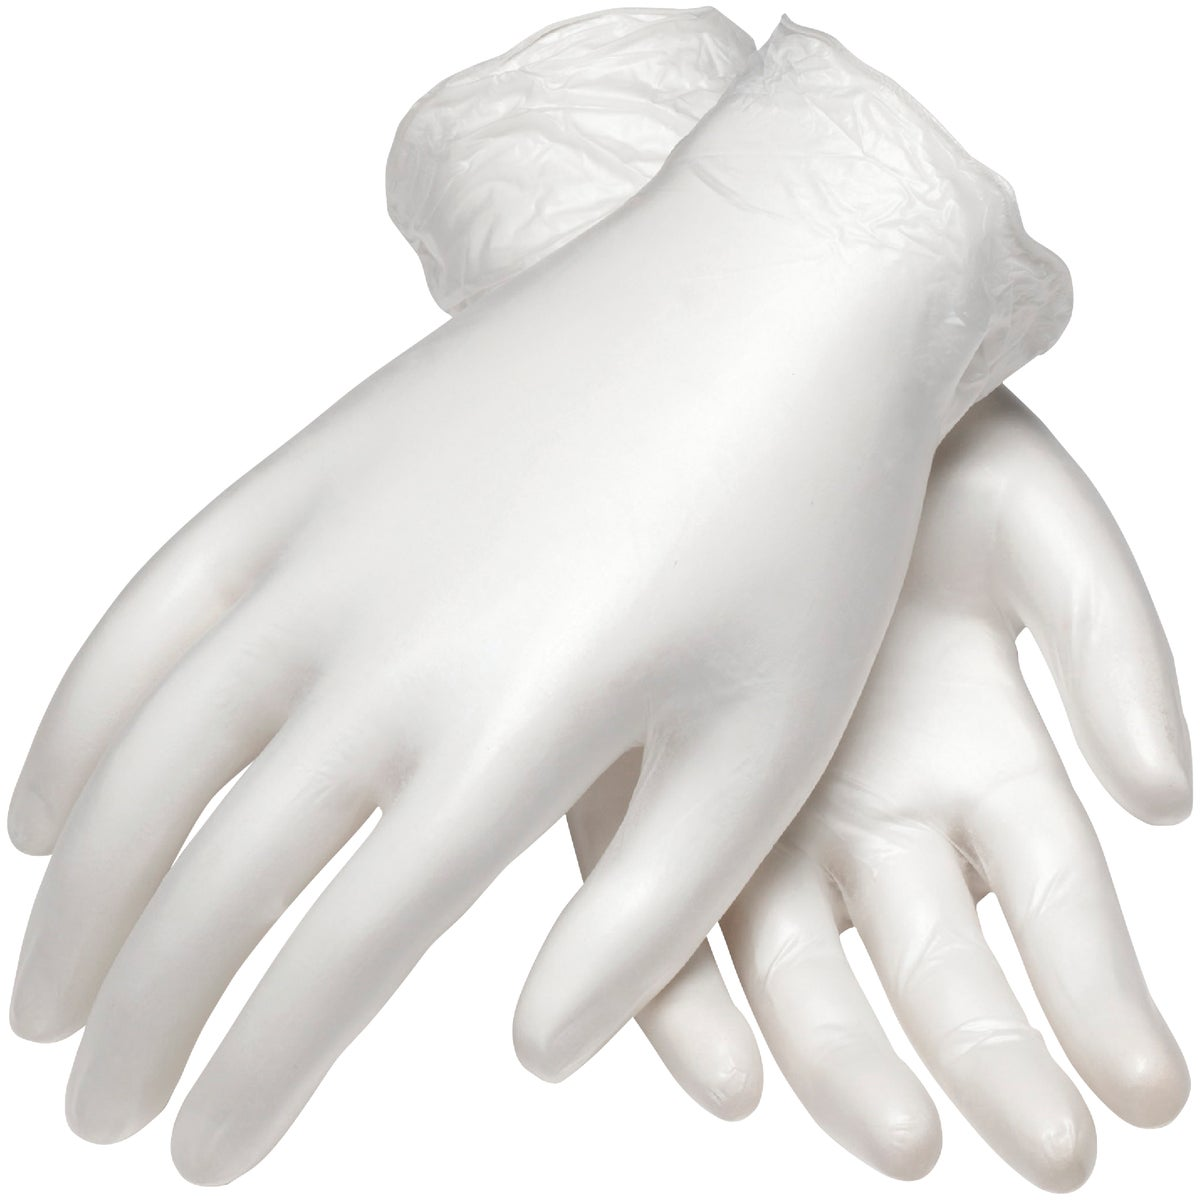 XL POWDERED VINYL GLOVES - 2700/XL by West Chester Incom